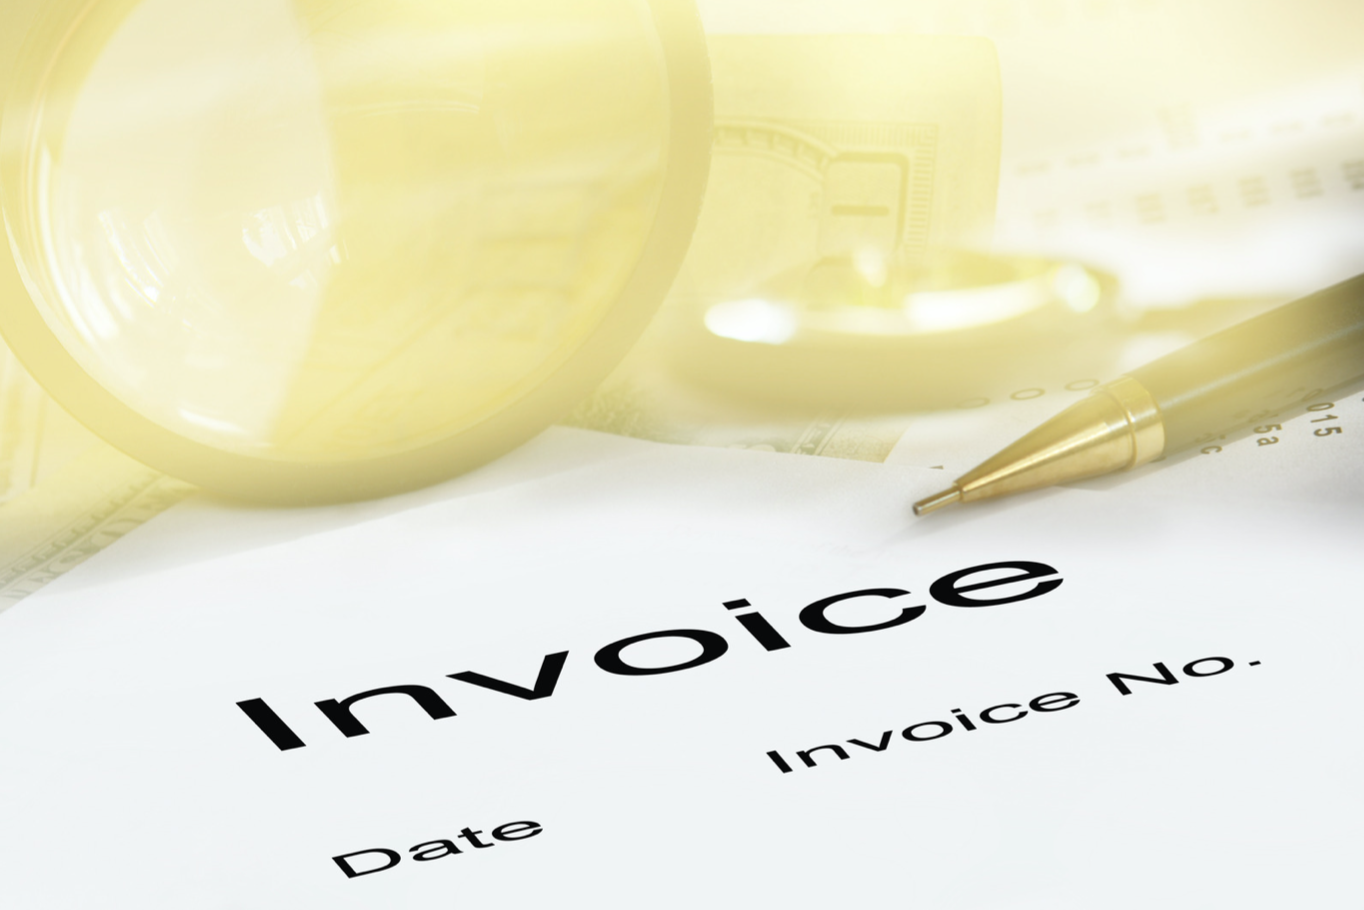 P3 HVAC Software - Purchase Order and Invoice